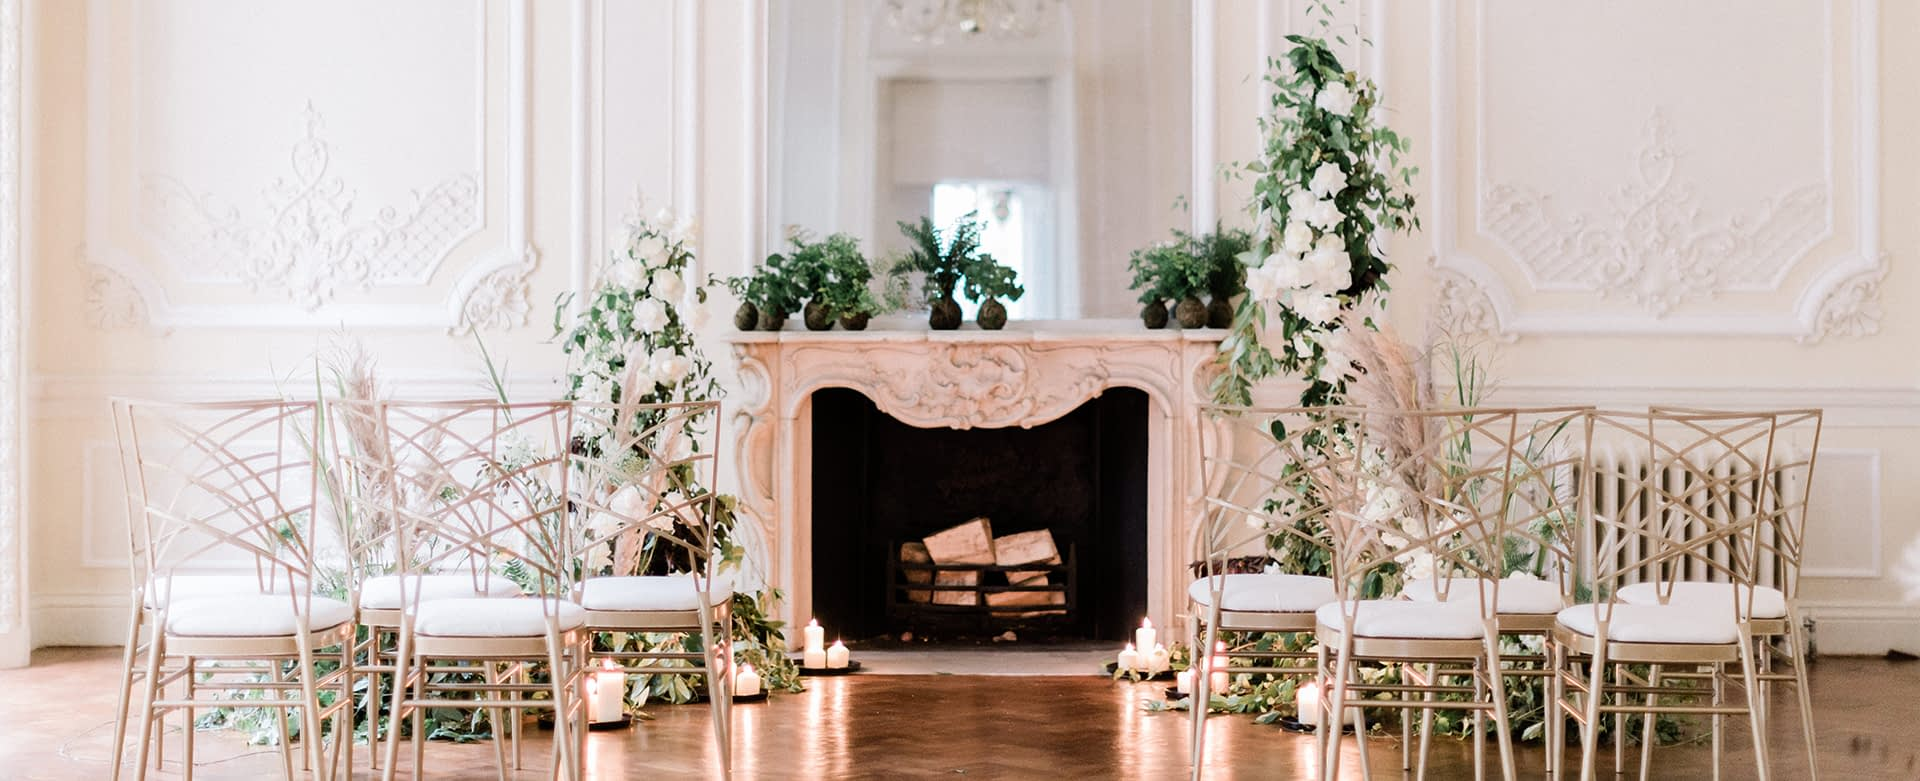 7 Things to Consider When Planning a Micro Wedding